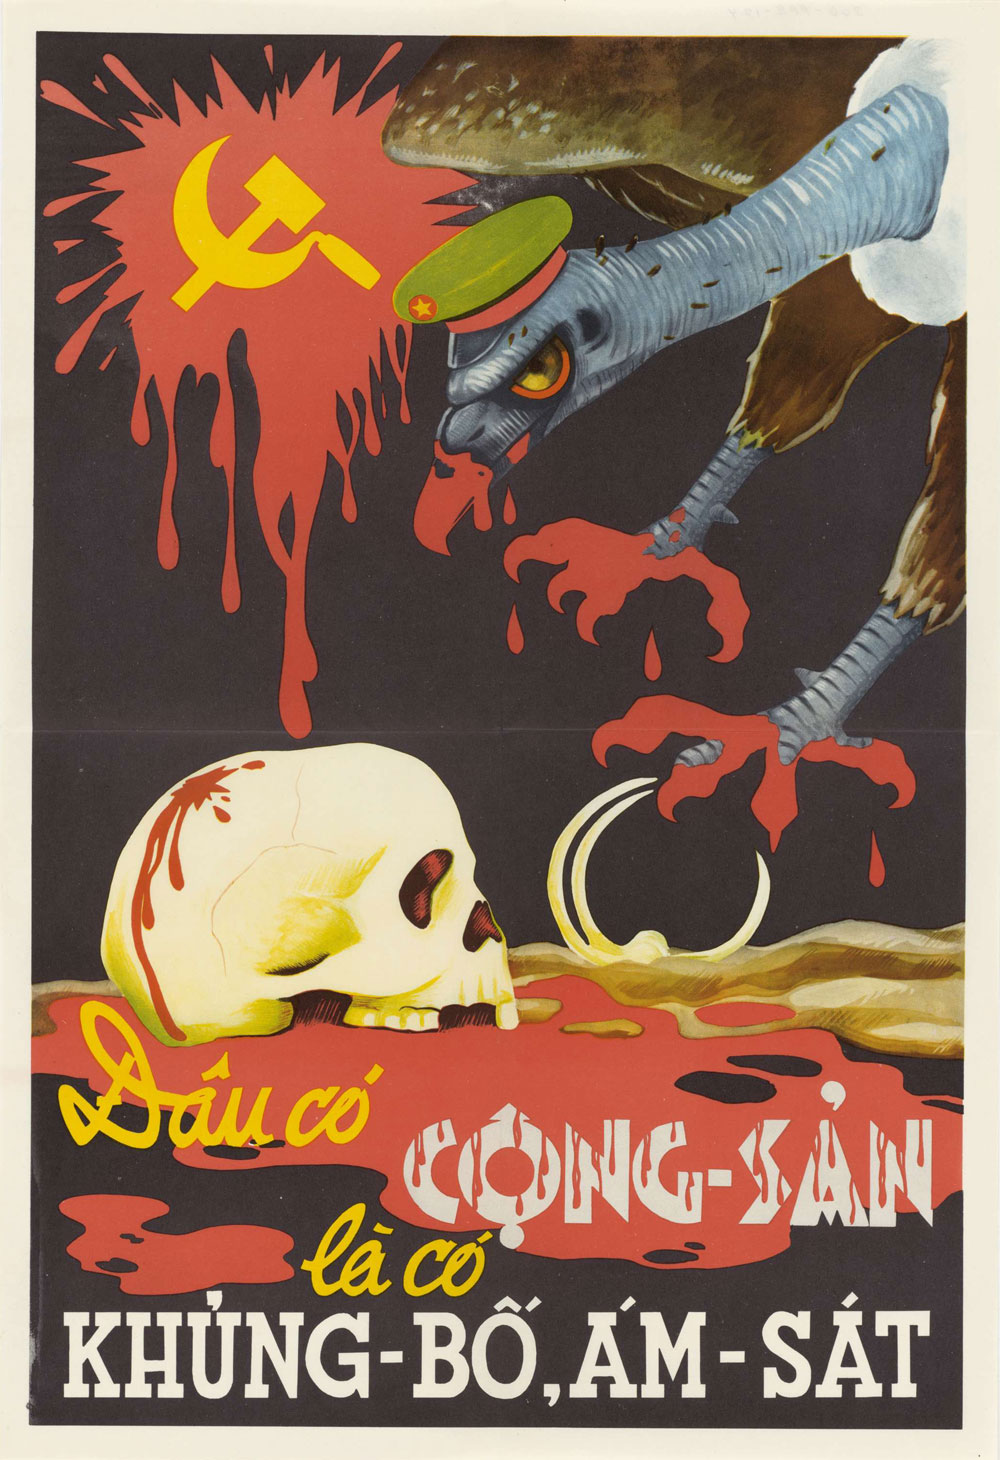 Poster depicting a buzzard with bloody talons grabbing a skull.